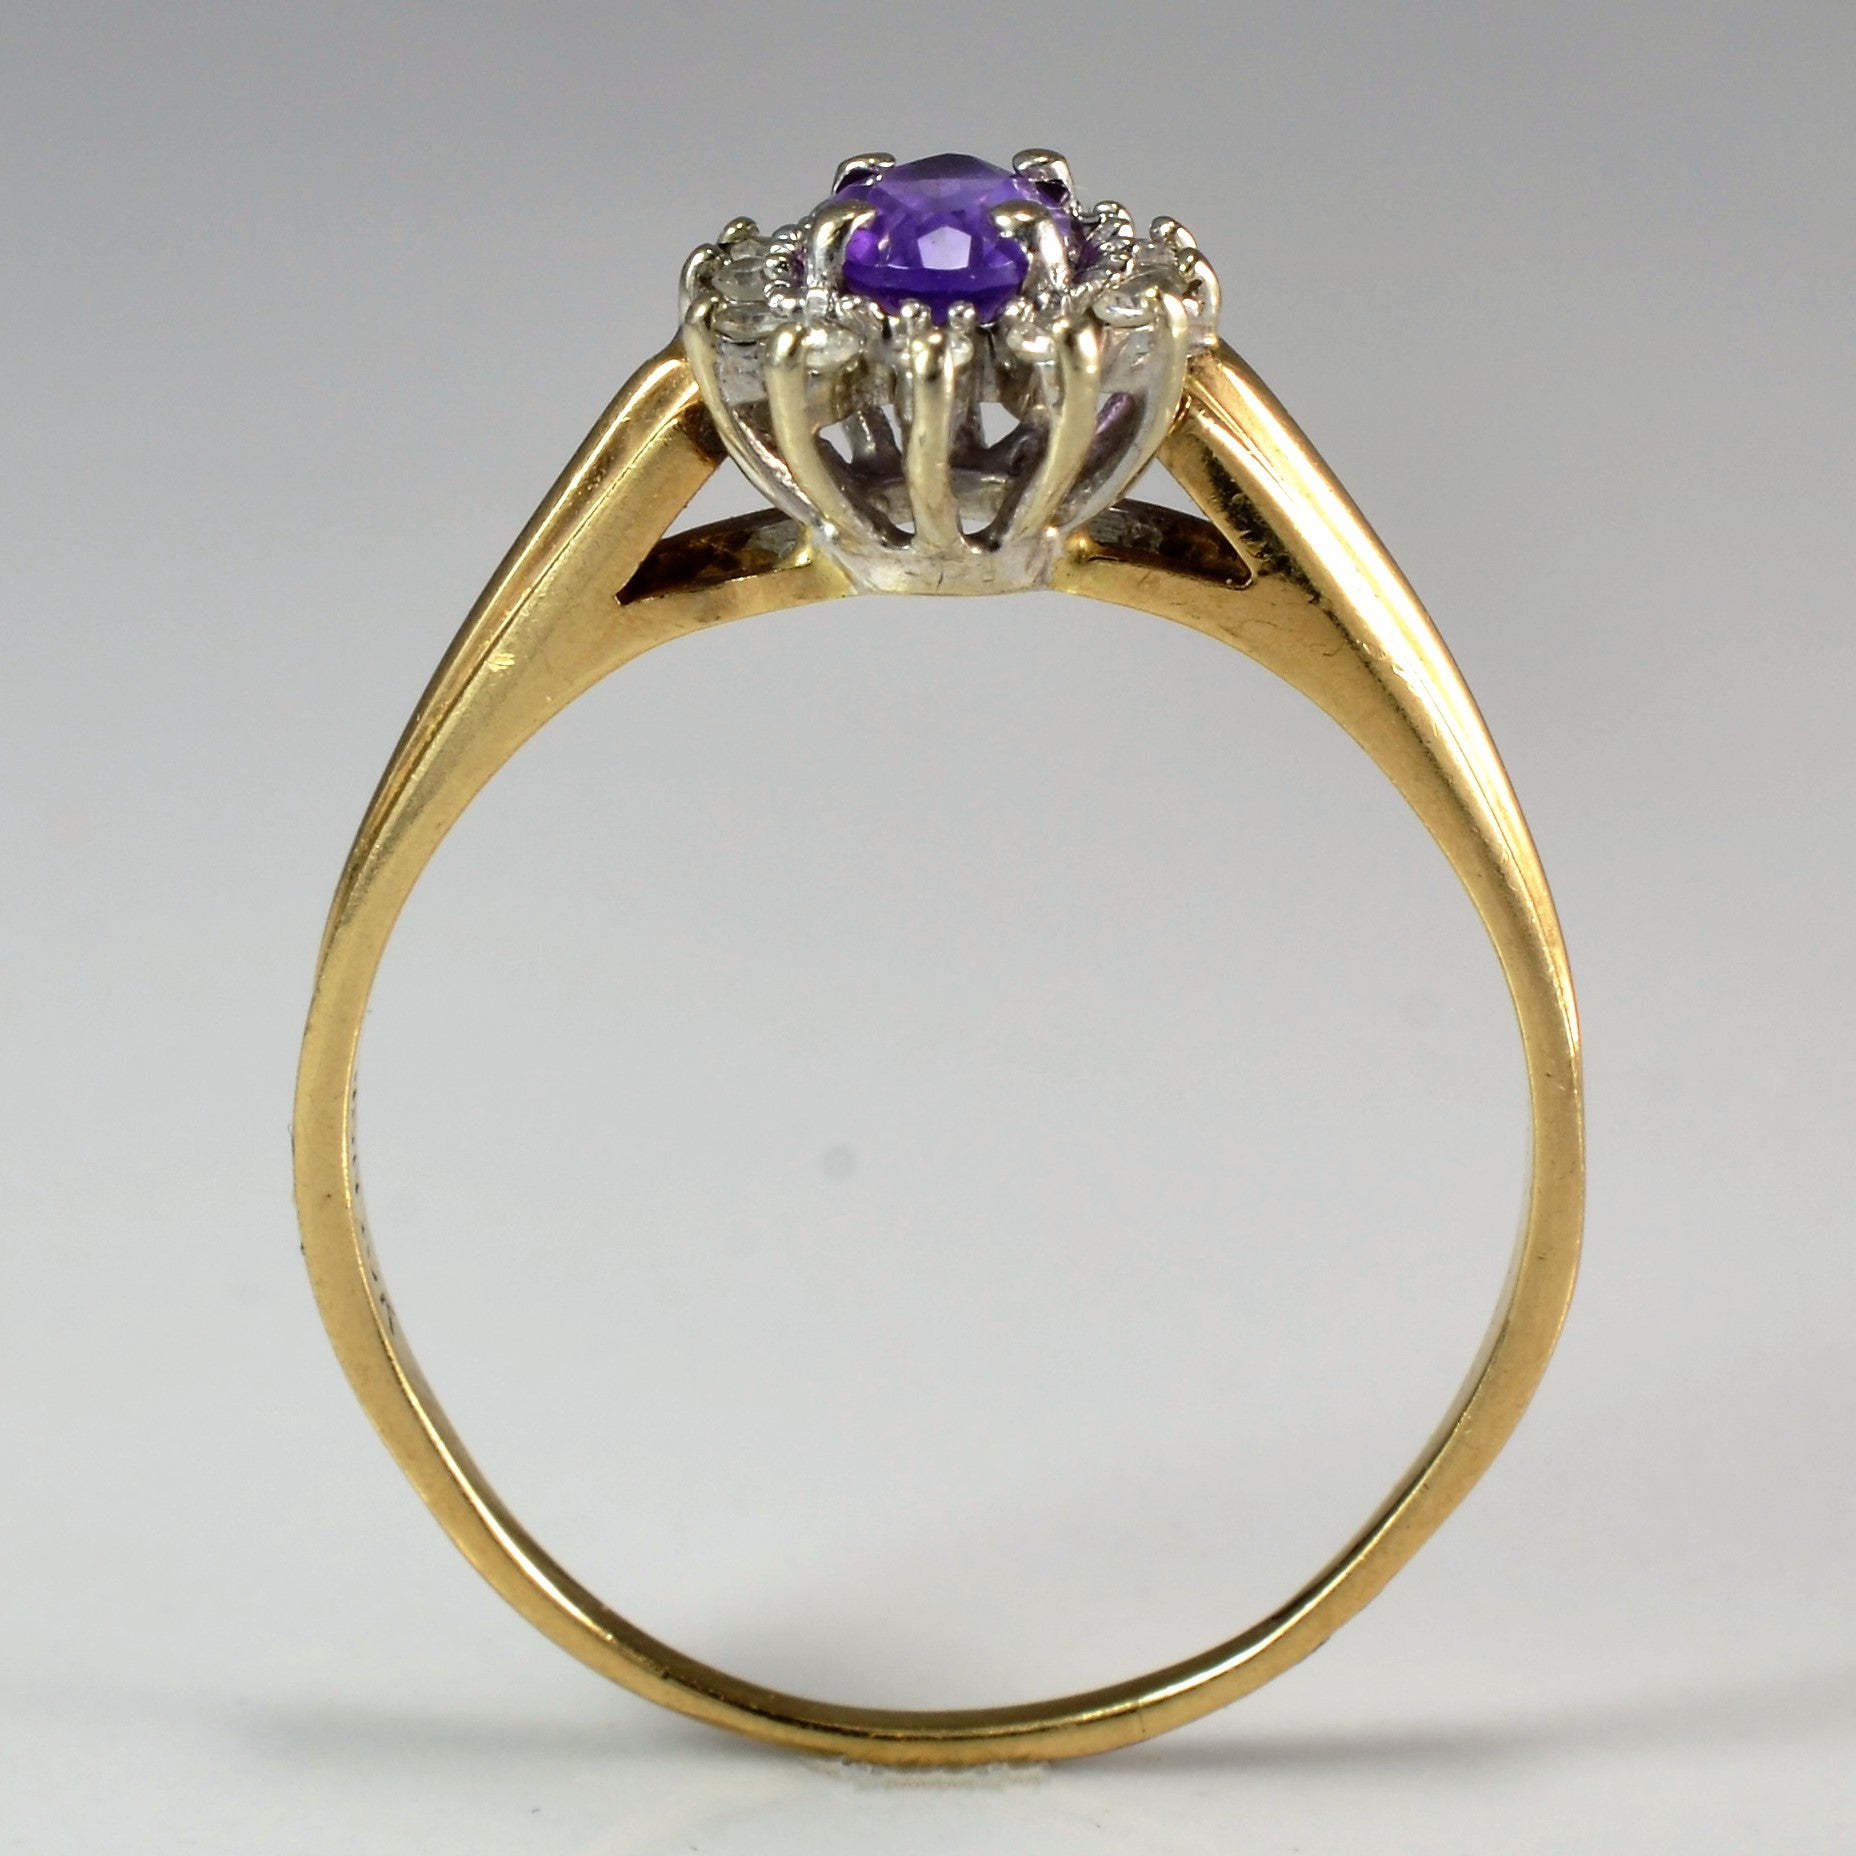 Oval Cut Amethyst & Diamond Ring | 0.12 ctw, SZ 8.5 |